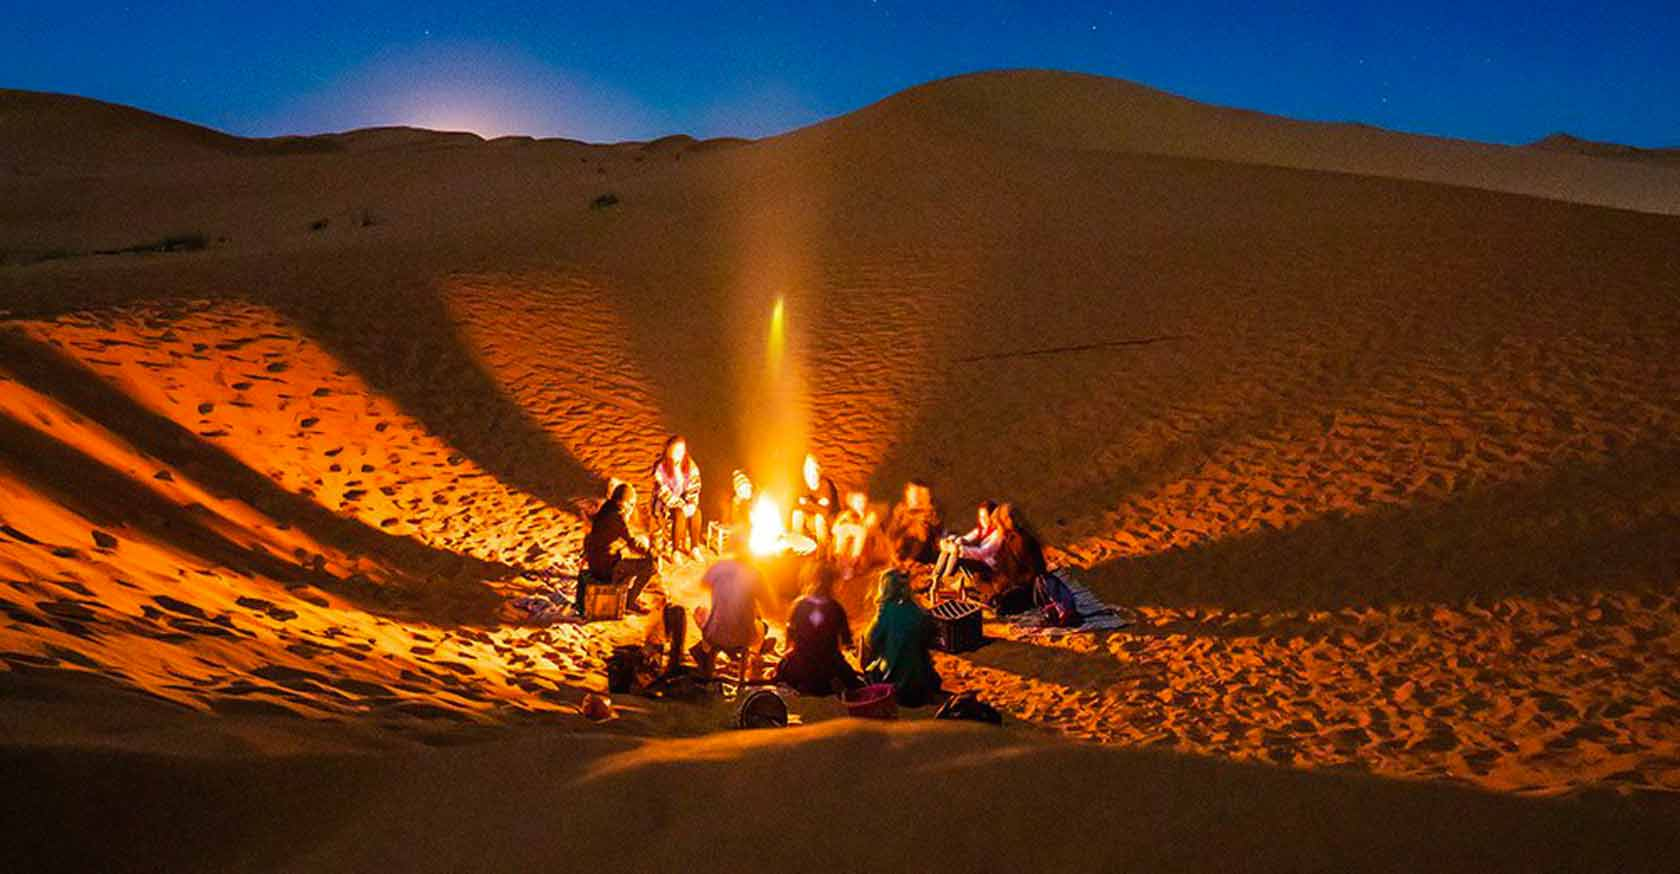 Varzaneh desert camp by Letsvisitpersia